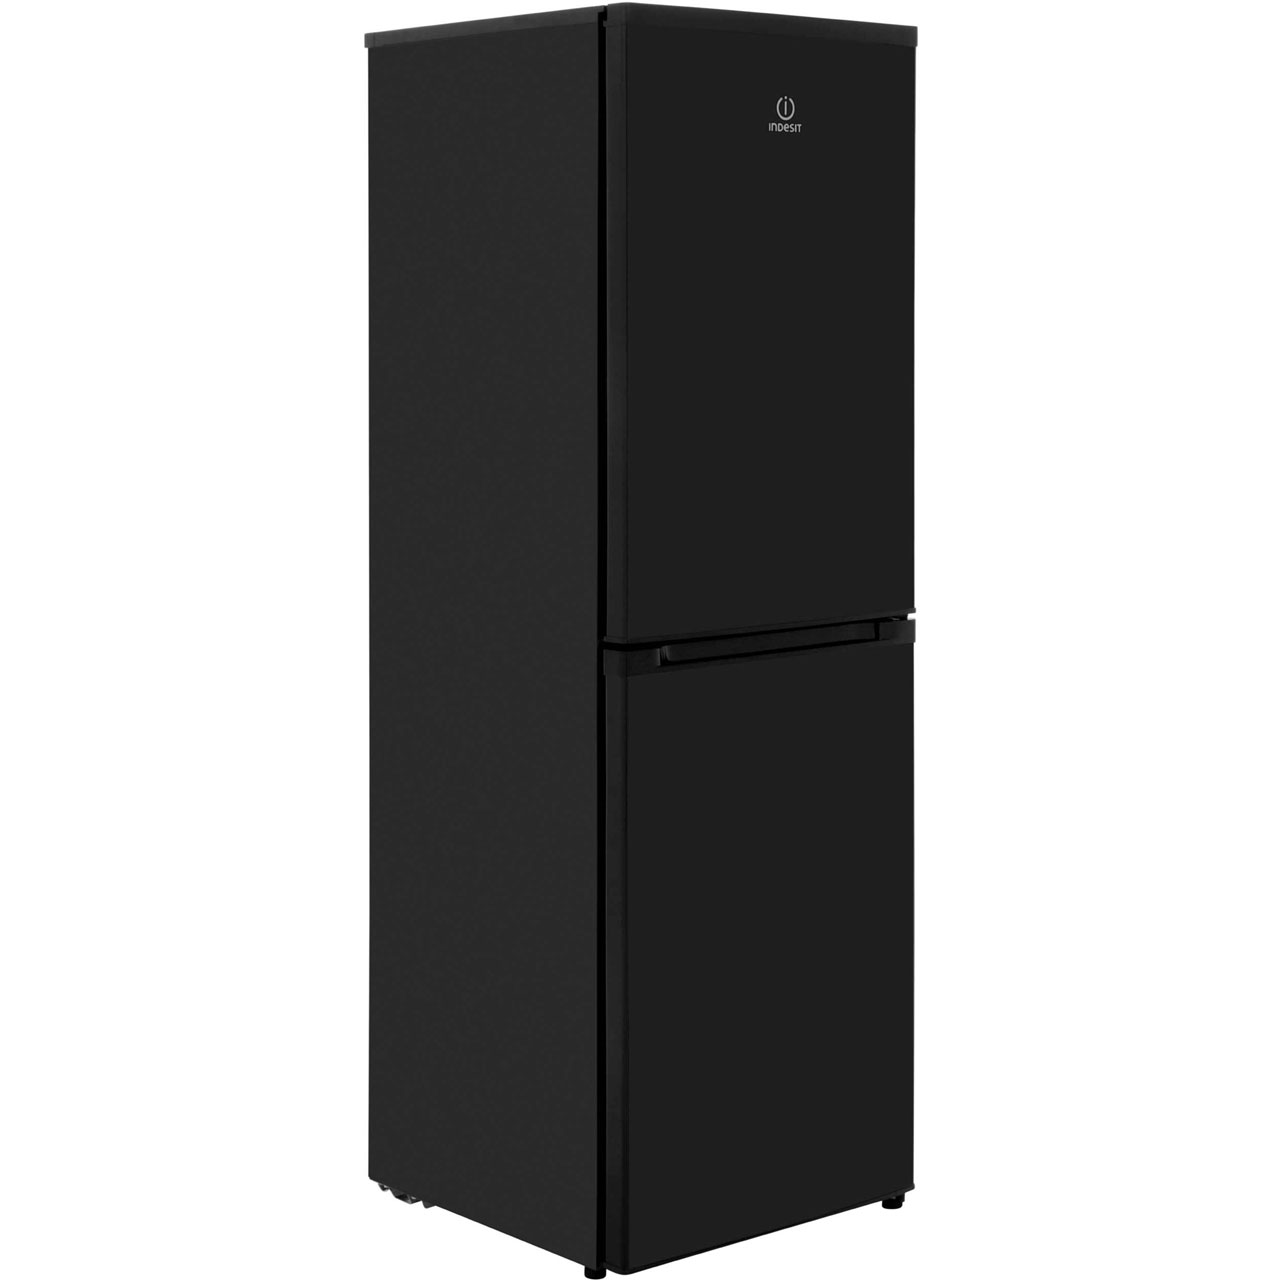 Indesit DAA55NFK 50/50 Frost Free Fridge Freezer - Black